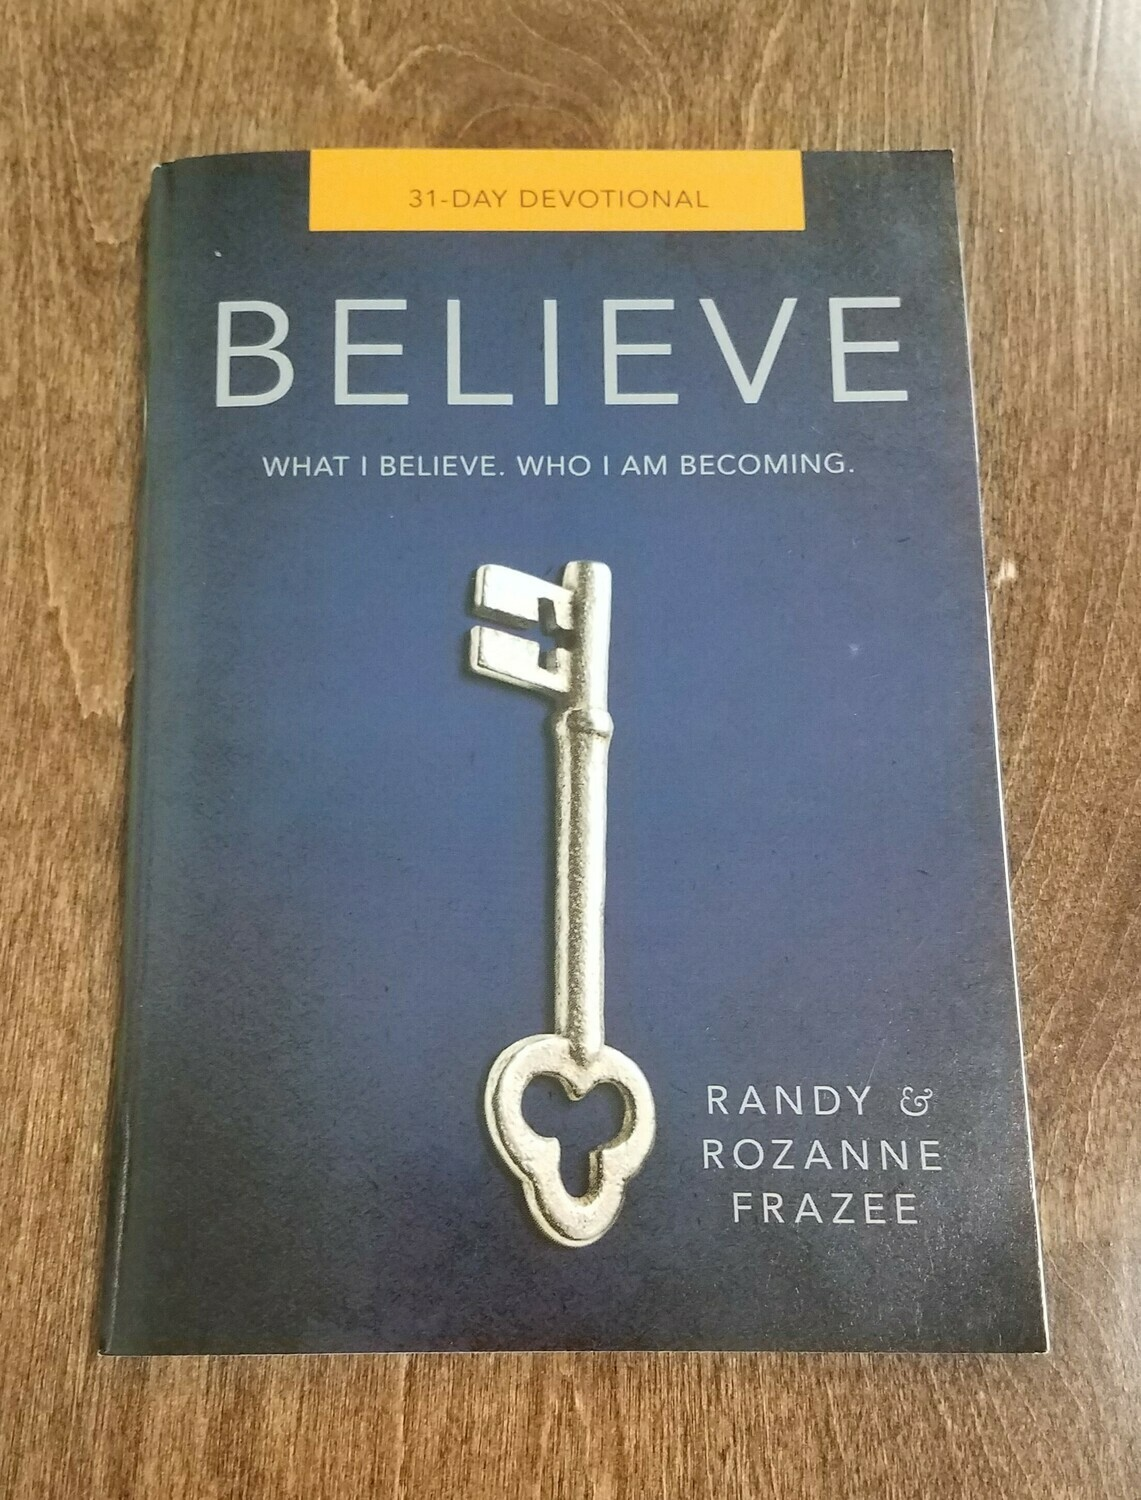 Believe by Randy and Rozanne Frazee